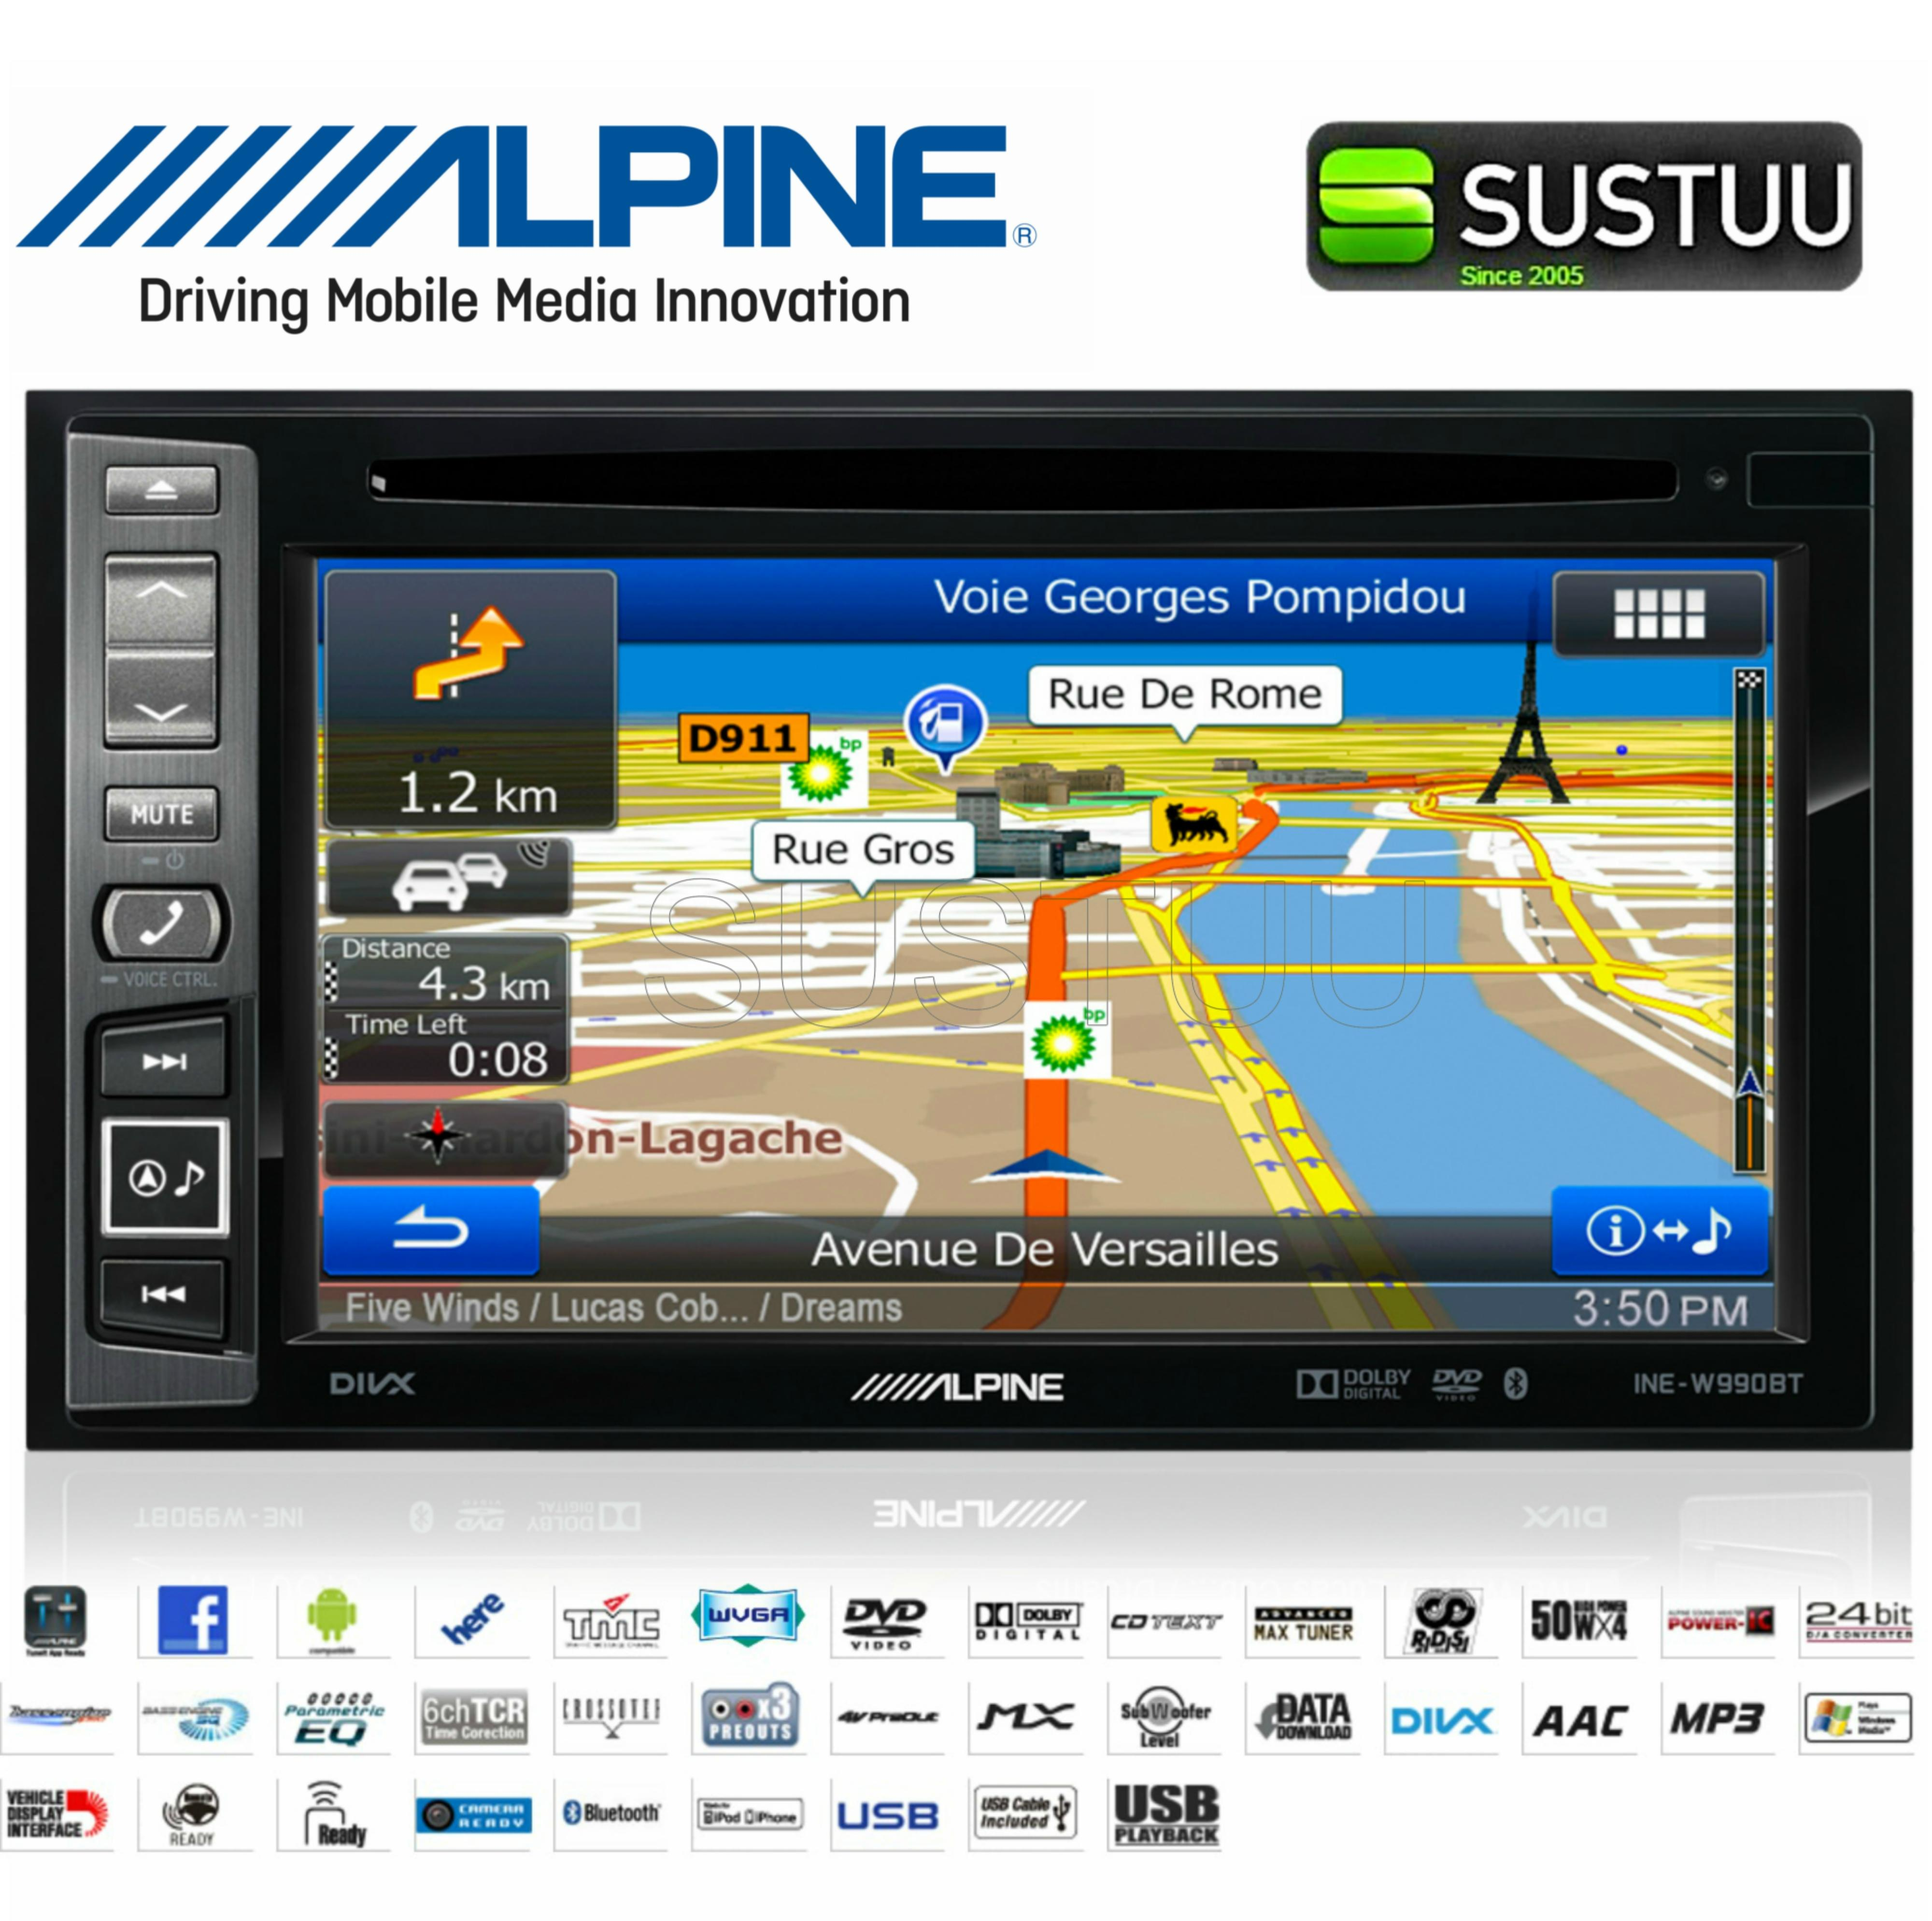 alpine ine w990bt doppel din 6 1 gps navi radio dvd cd mp3 bluetooth gebaut ebay. Black Bedroom Furniture Sets. Home Design Ideas